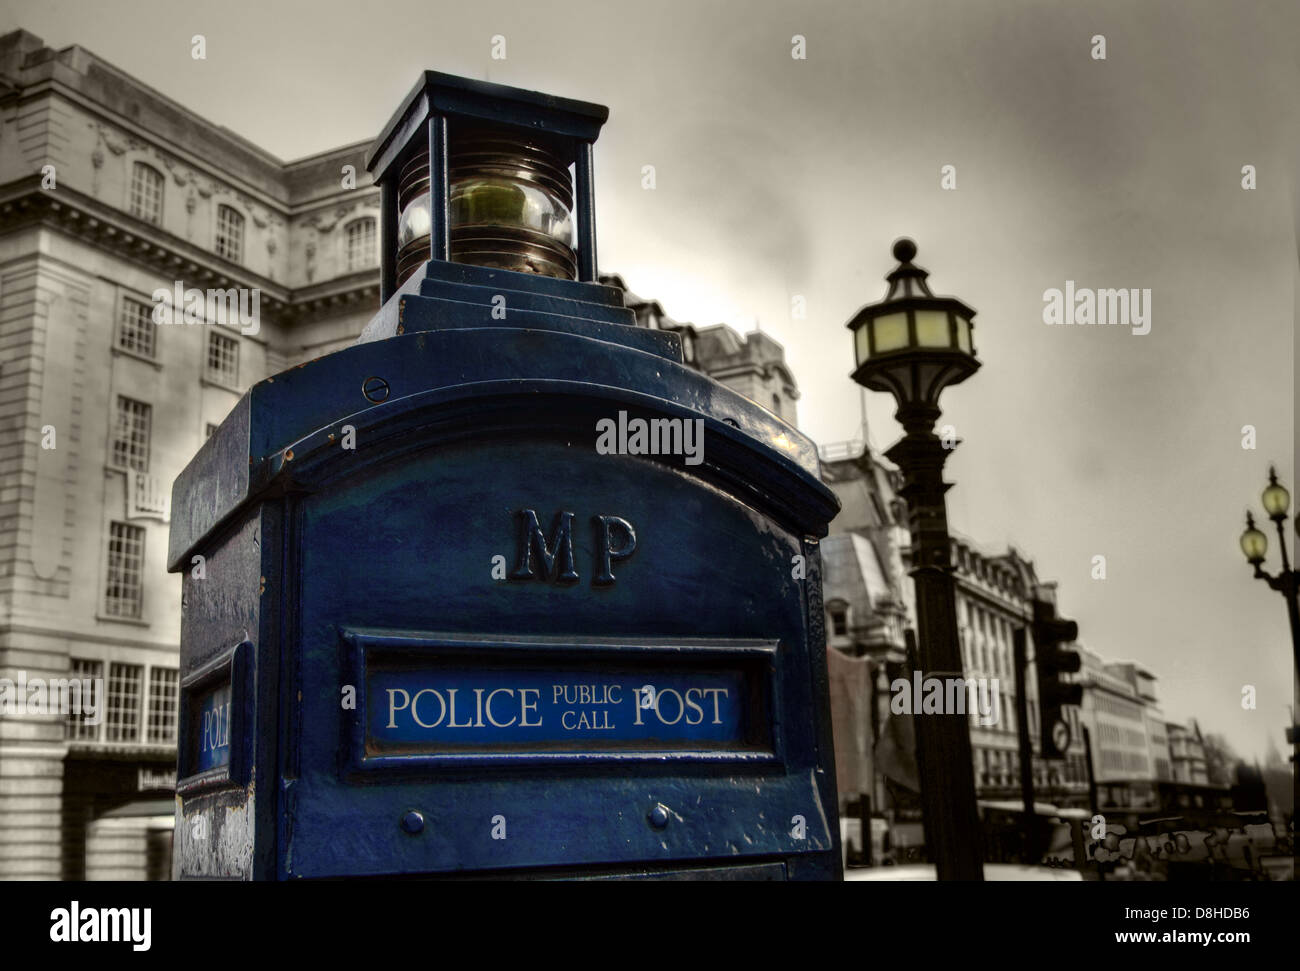 Blue Police Public Call Box London Dr Who , Piccadilly, England UK - Stock Image